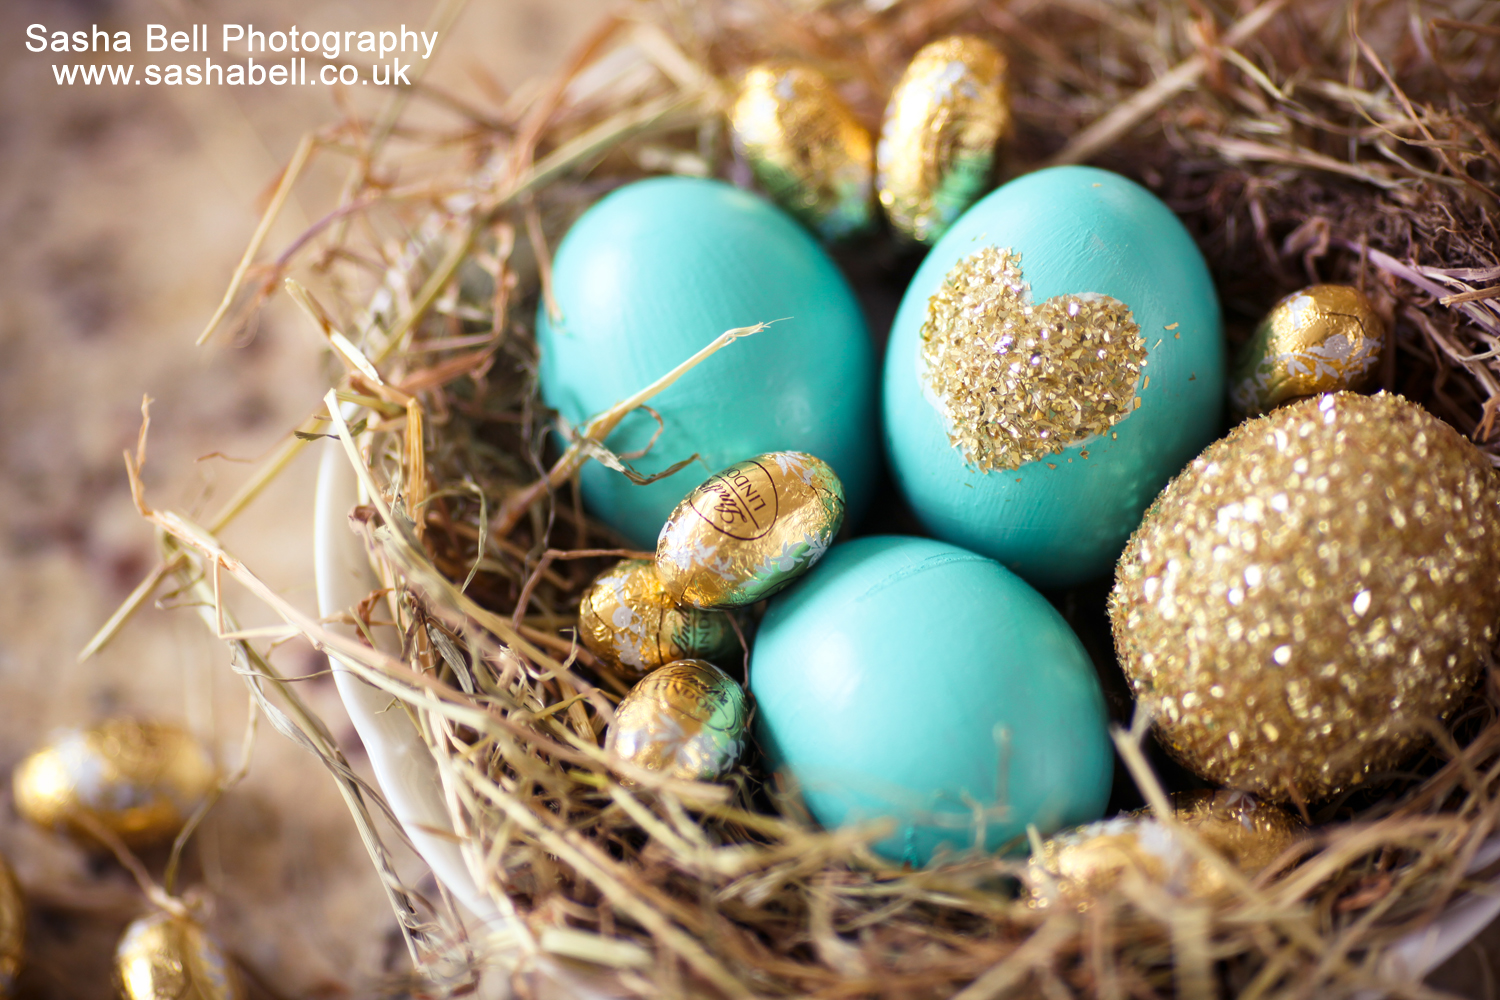 Blue and Gold Easter Eggs – Day 184/365